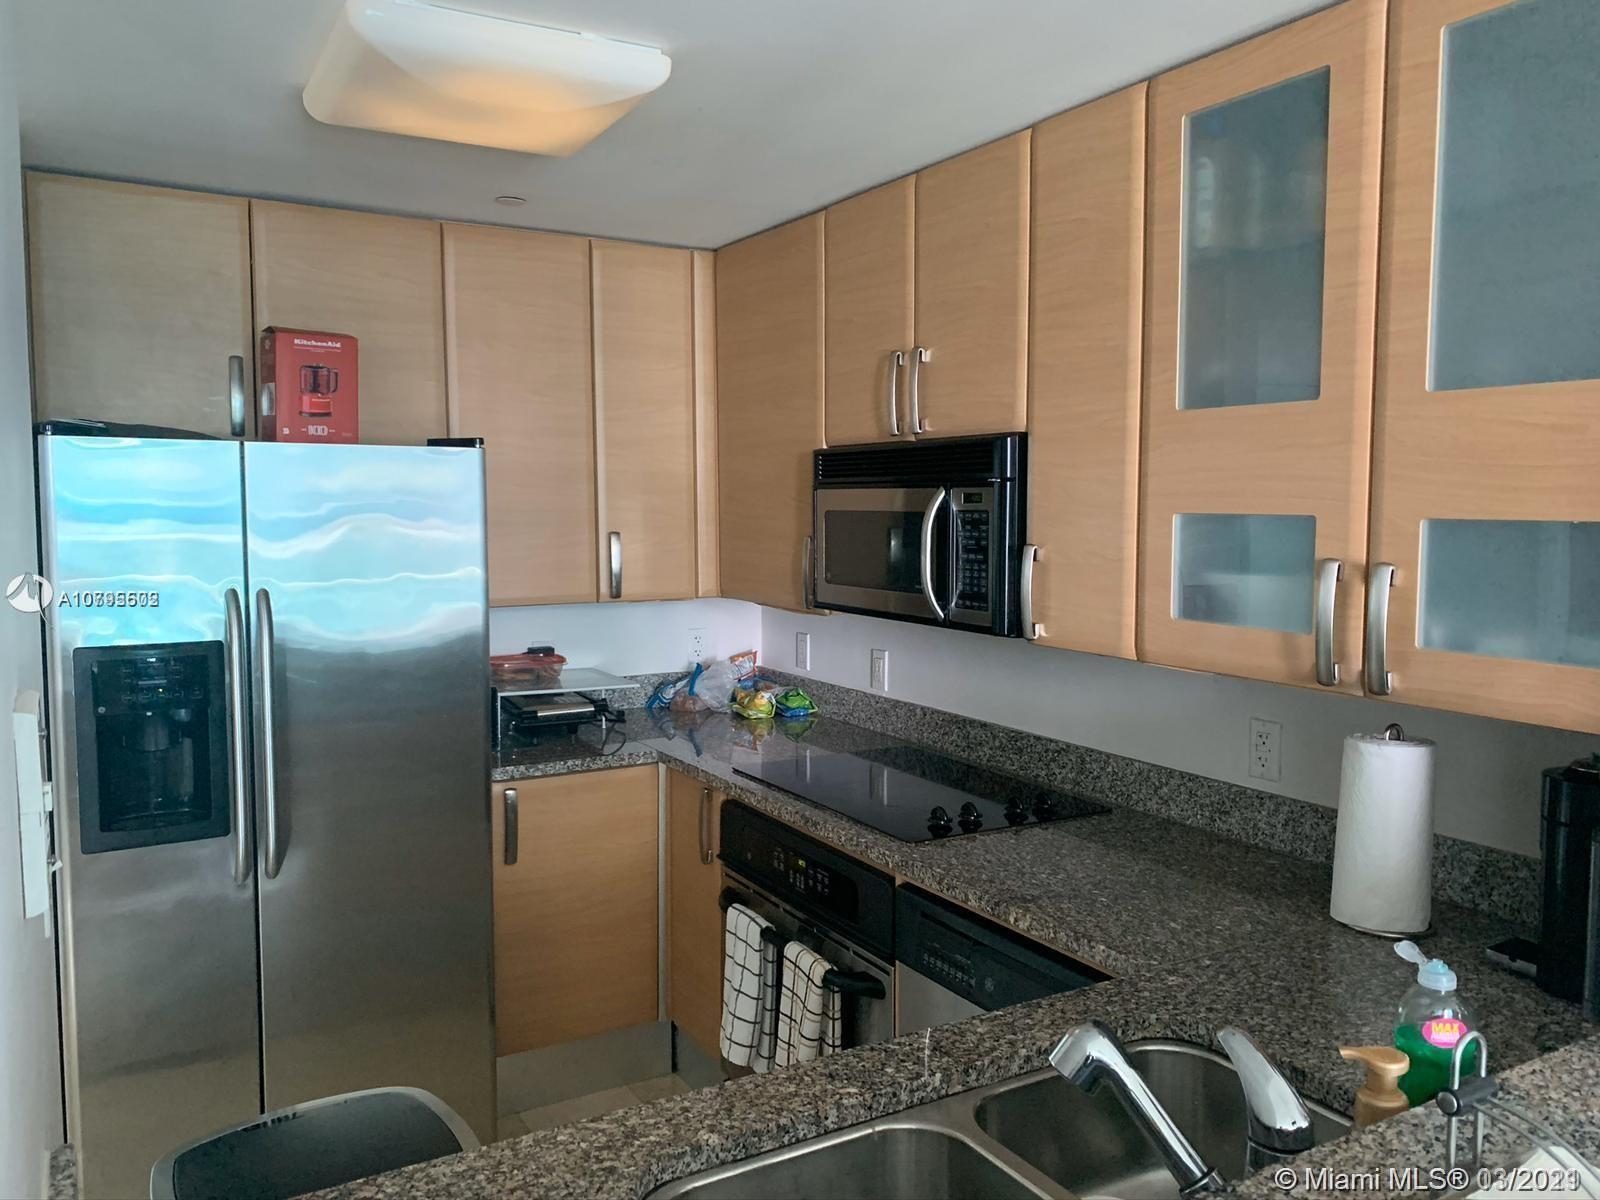 2101 Brickell Ave # 3106, Miami, Florida 33129, 2 Bedrooms Bedrooms, ,2 BathroomsBathrooms,Residential,For Sale,2101 Brickell Ave # 3106,A10795502